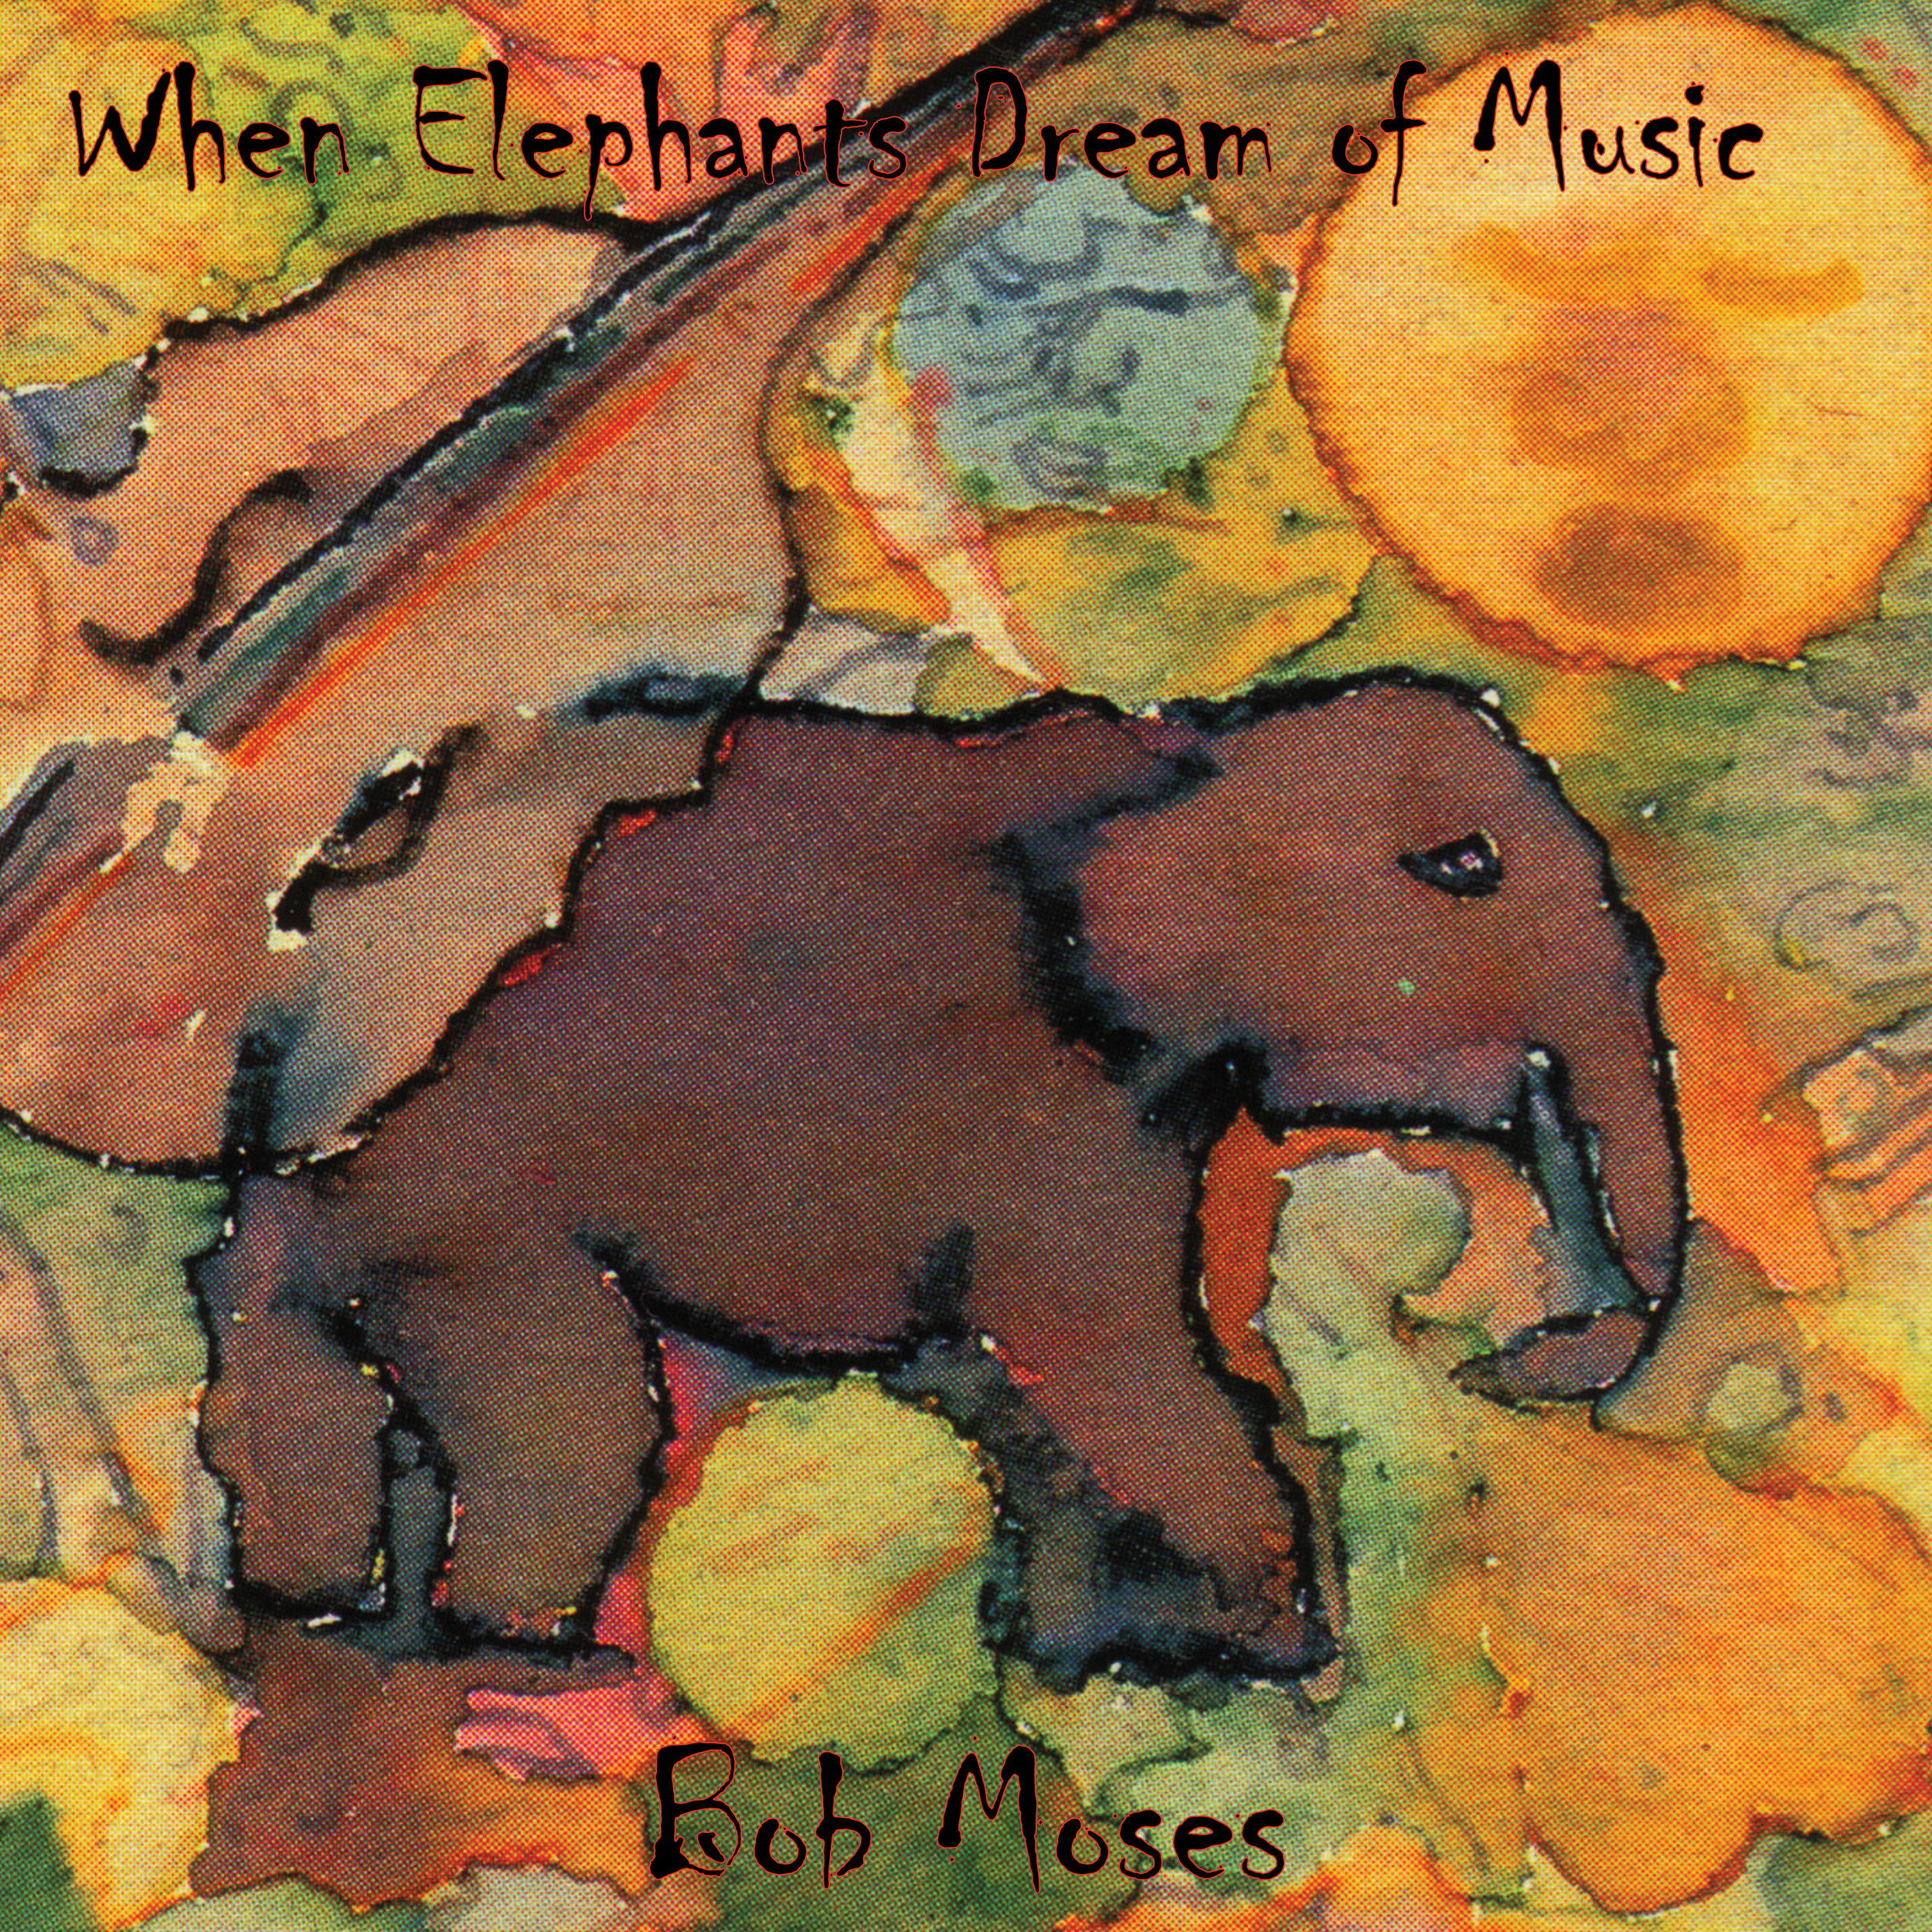 When Elephants Dream of Music